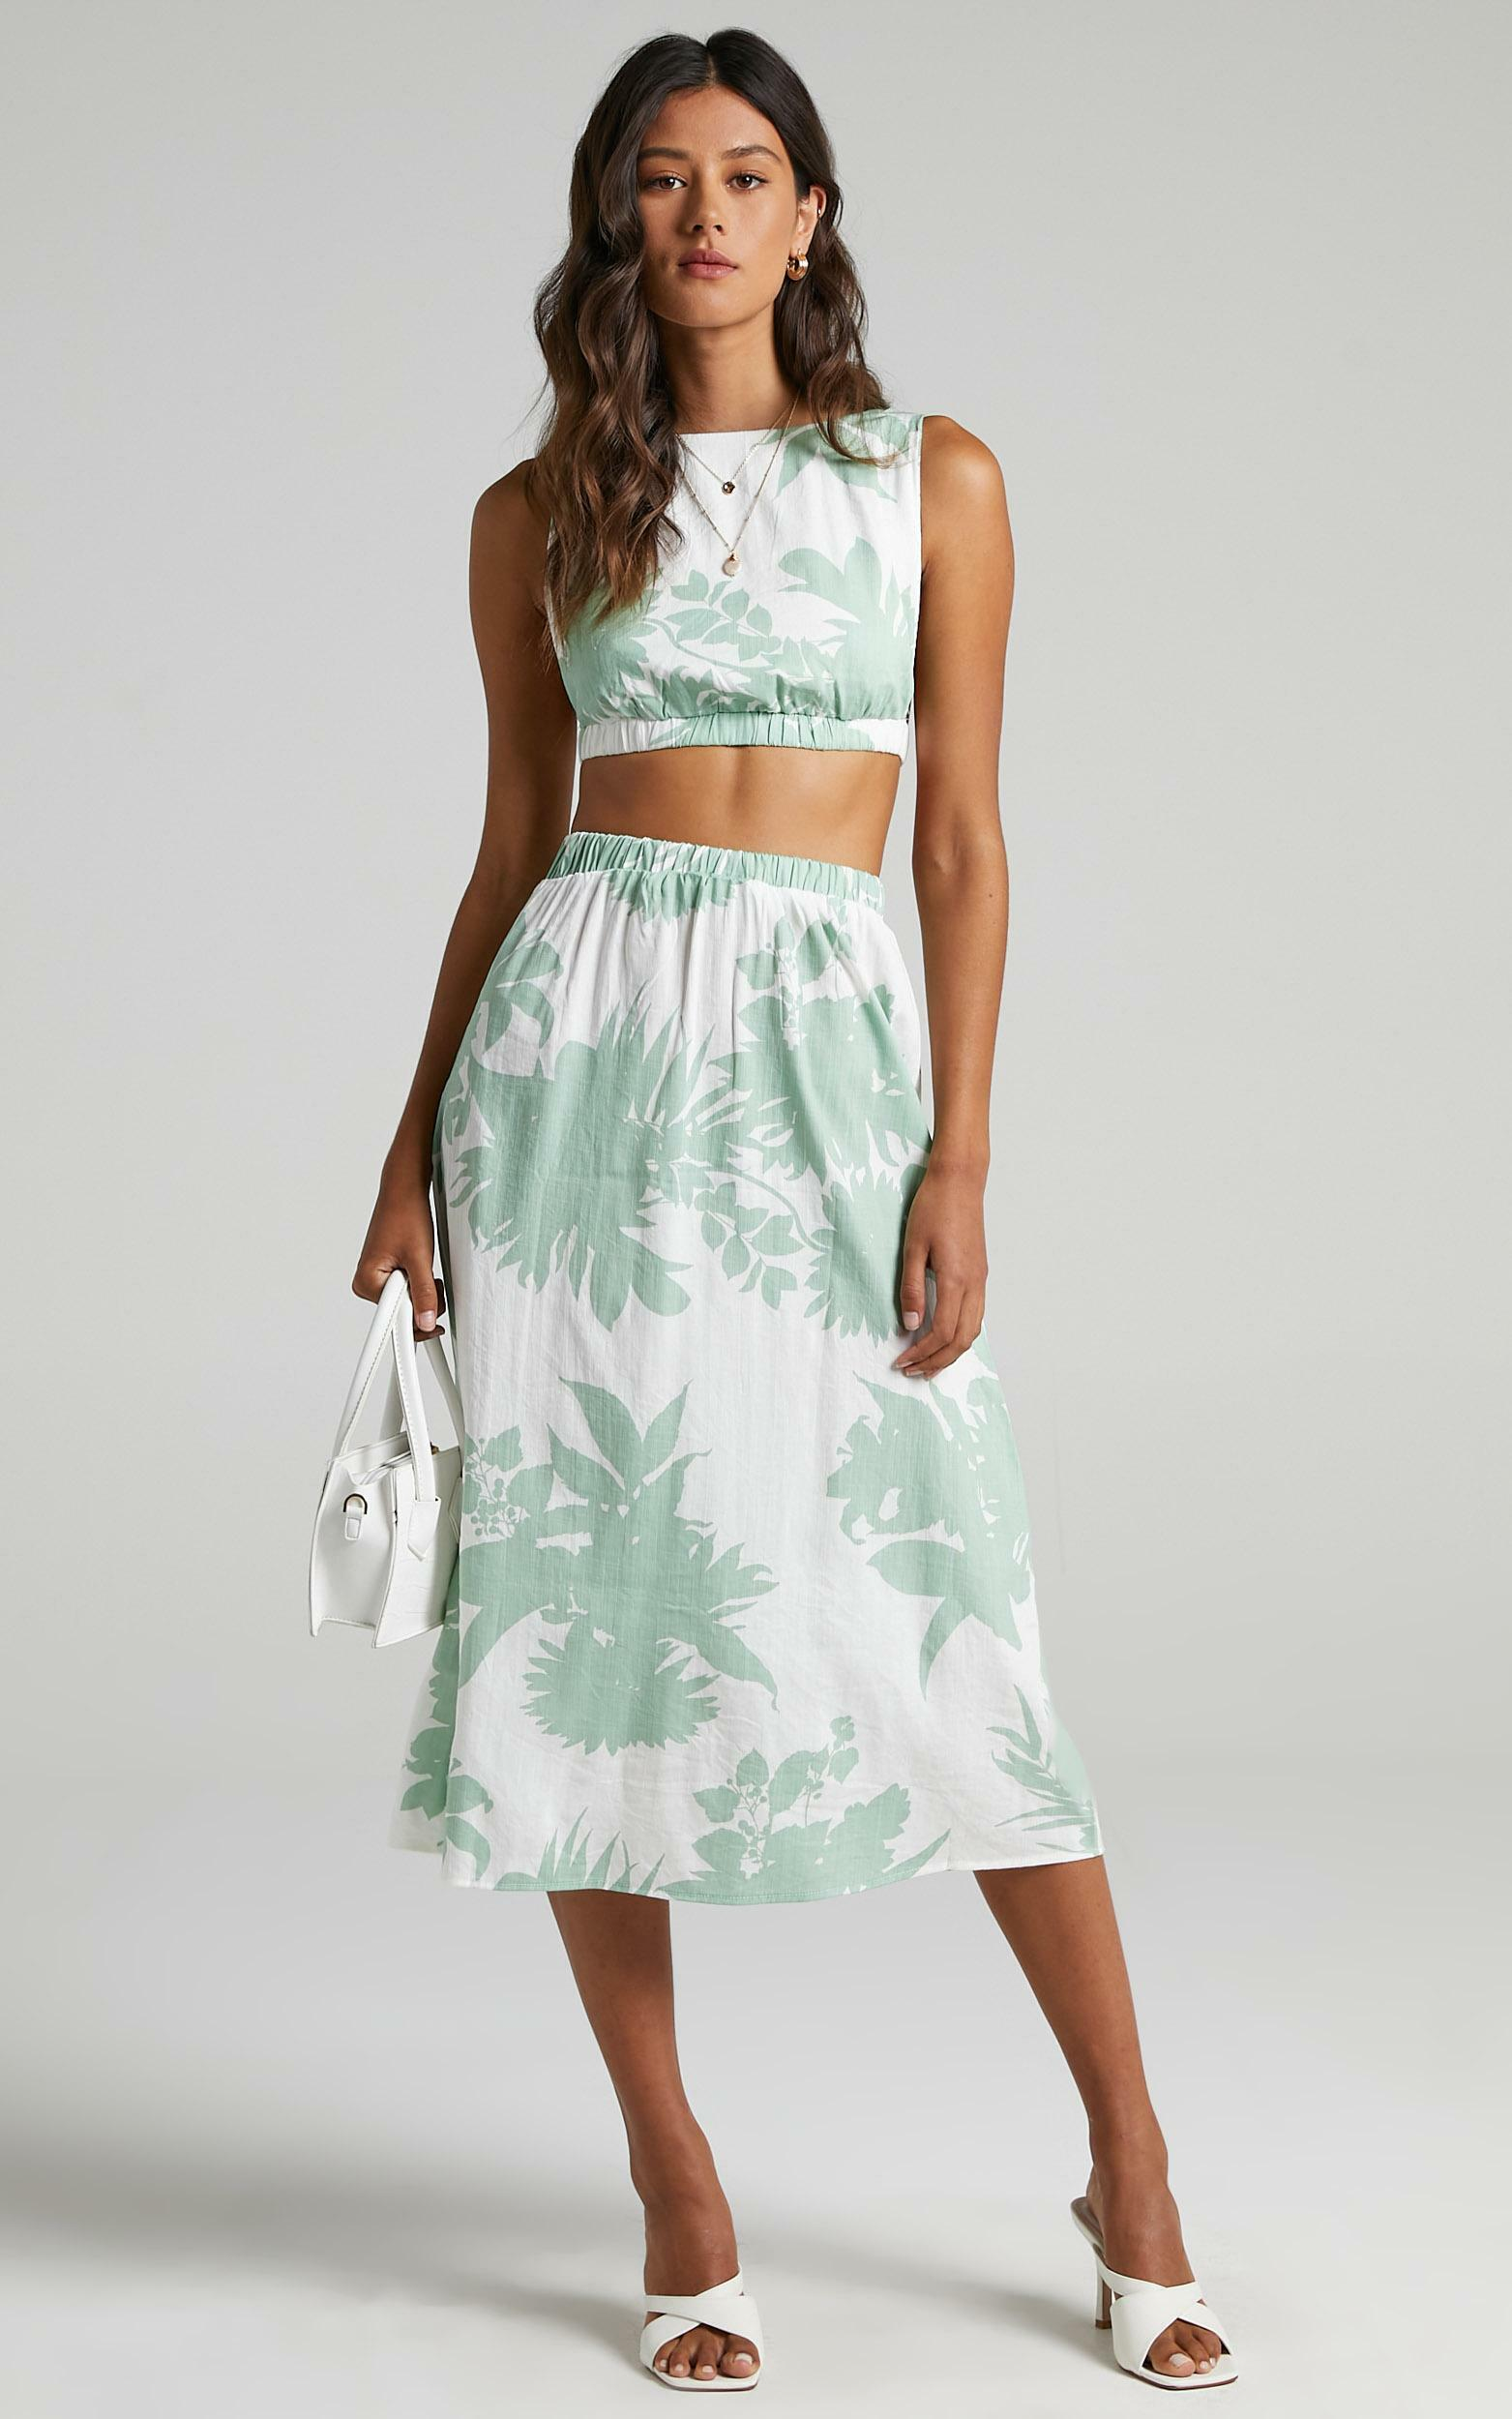 Tash Two Piece Set in Green Palm - 6 (XS), Multi, hi-res image number null